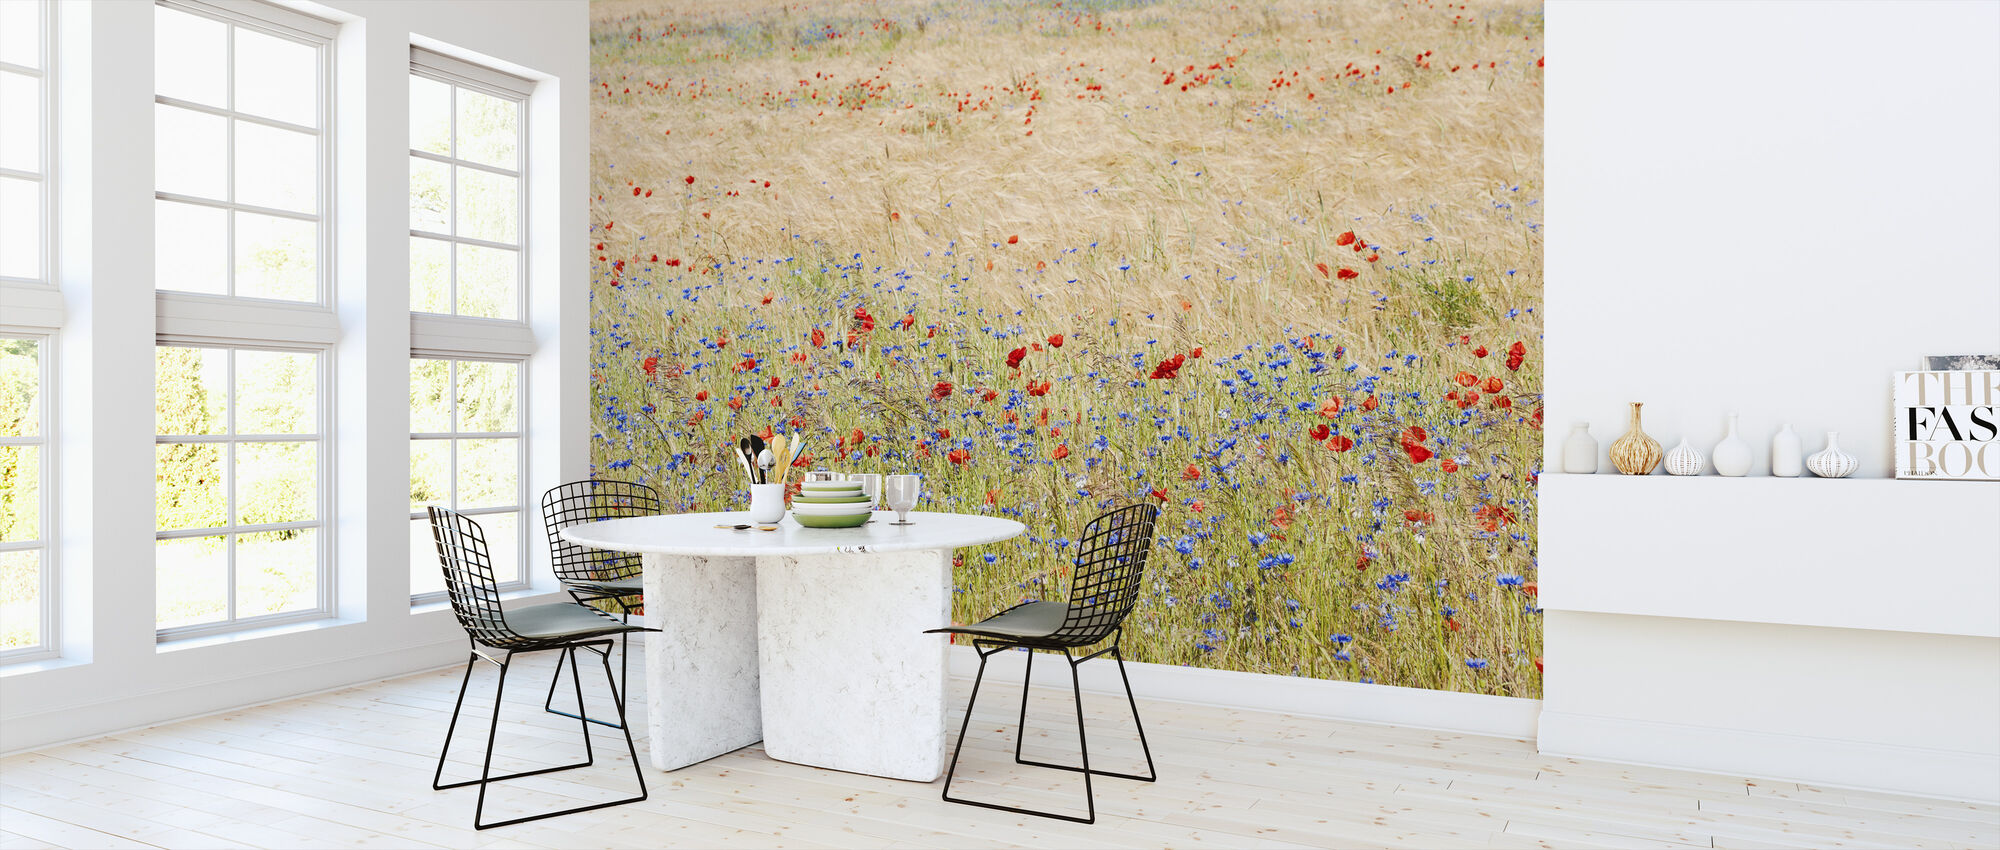 Rye Field with Flowers - Wallpaper - Kitchen